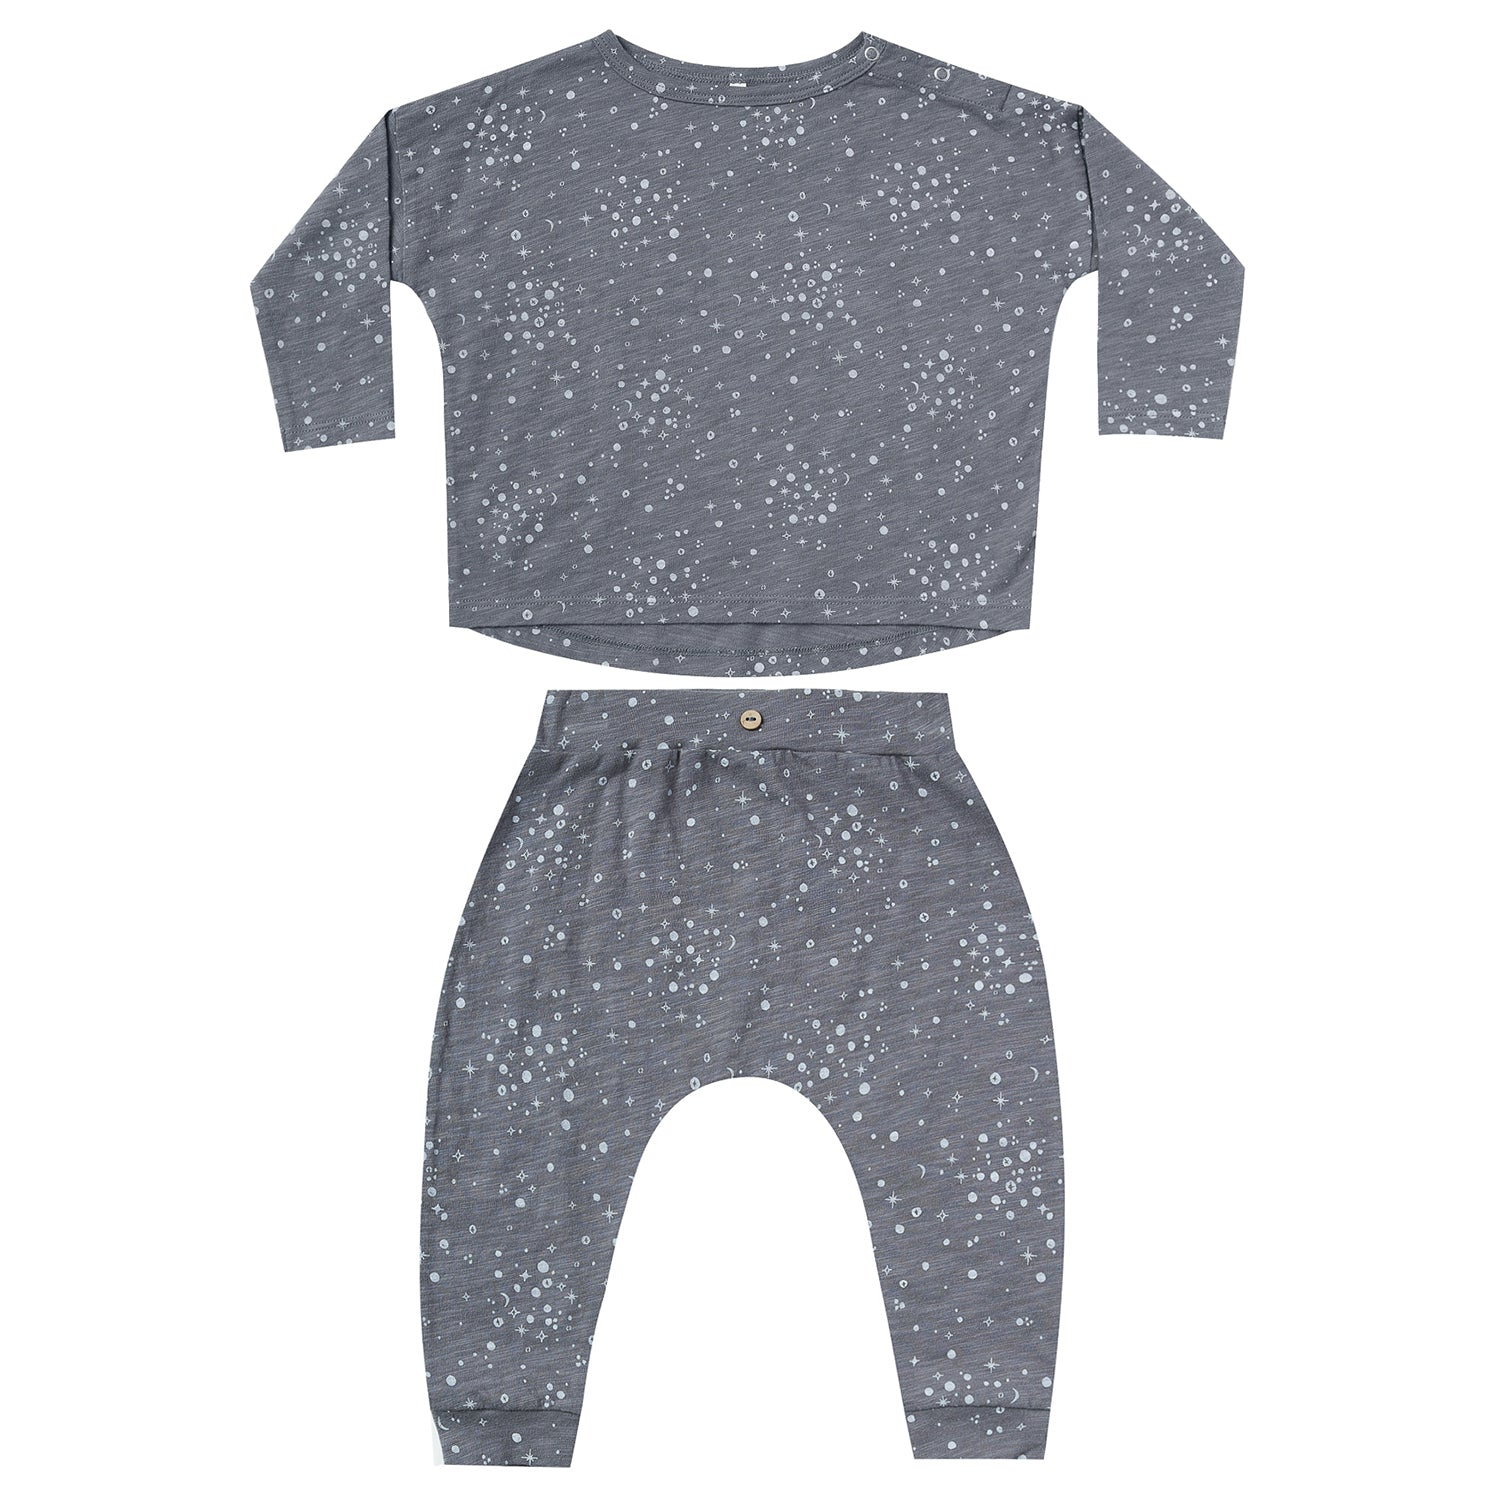 rylee & cru moondust baby set